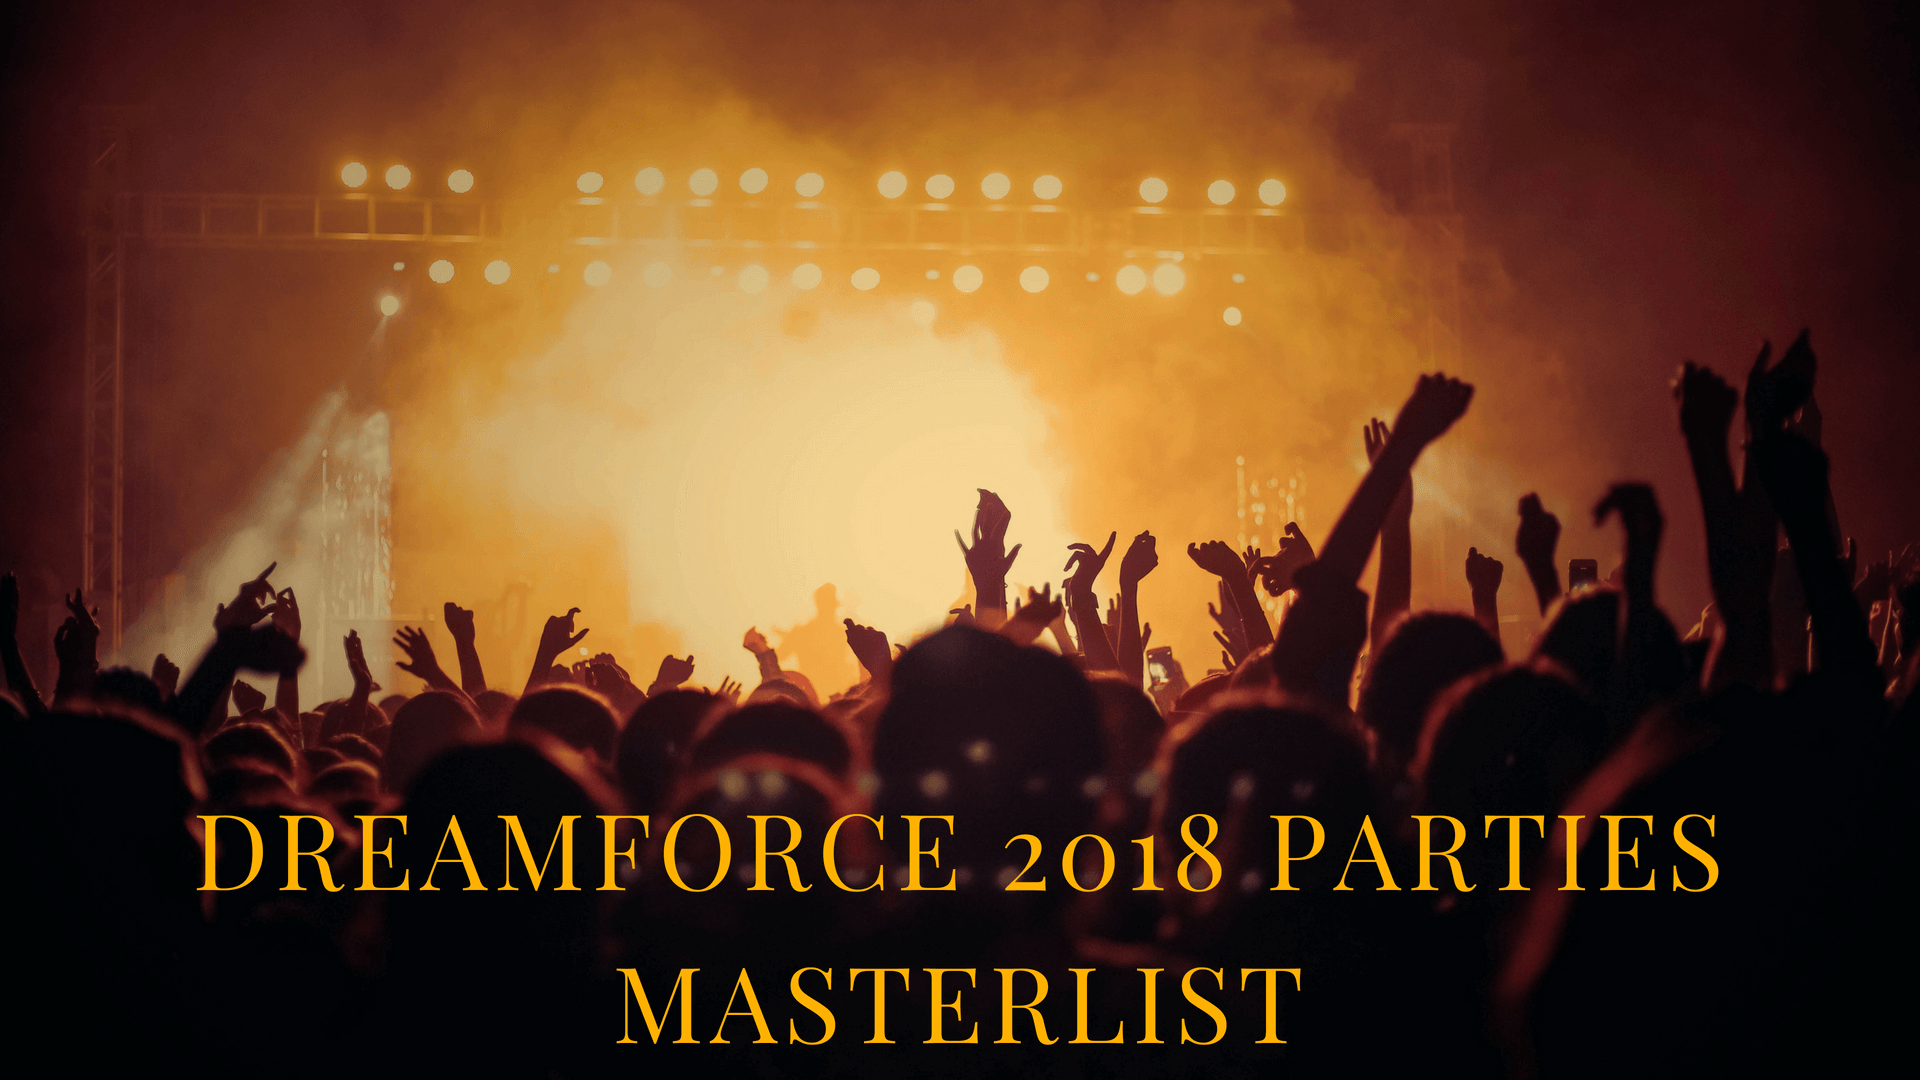 Dreamforce 2018 Parties Masterlist